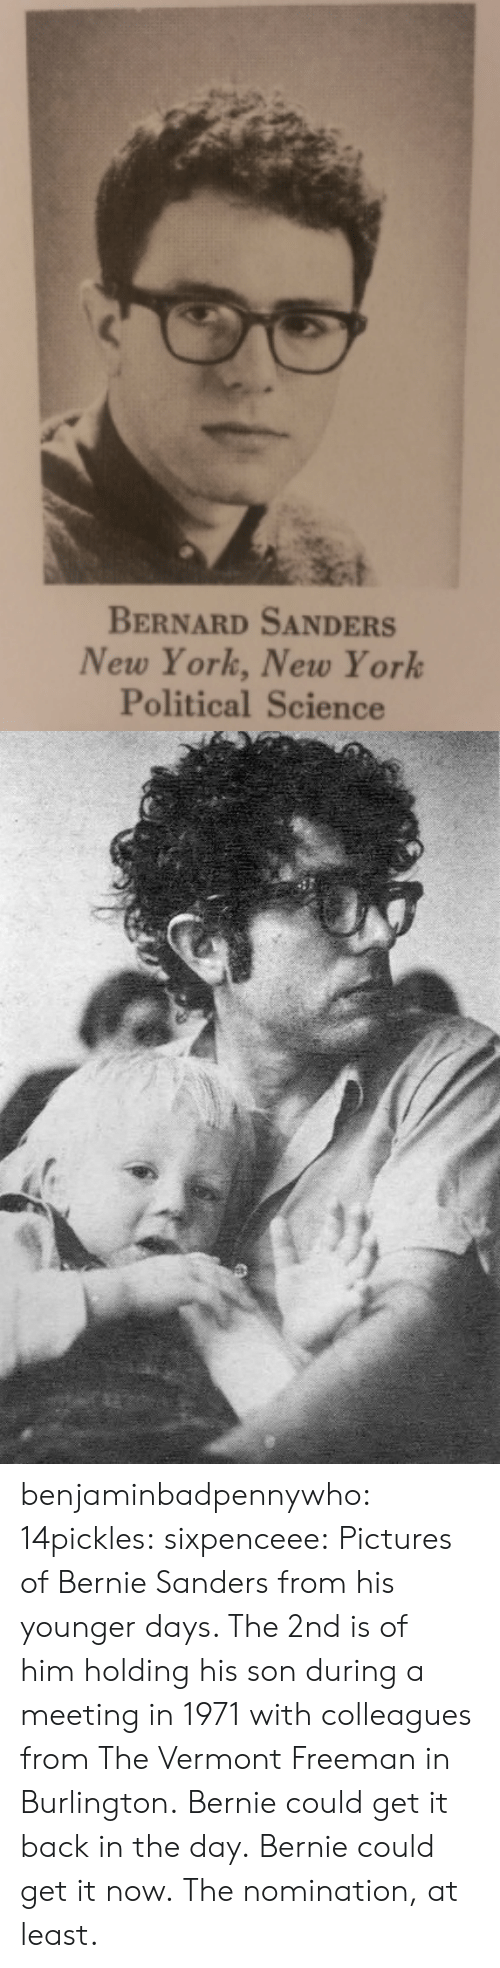 Bernie Sanders, New York, and Tumblr: BERNARD SANDERS  New York, New York  Political Science benjaminbadpennywho:  14pickles:  sixpenceee:  Pictures of Bernie Sanders from his younger days. The 2nd is of him holding his son during a meeting in 1971 with colleagues from The Vermont Freeman in Burlington.  Bernie could get it back in the day.  Bernie could get it now. The nomination, at least.